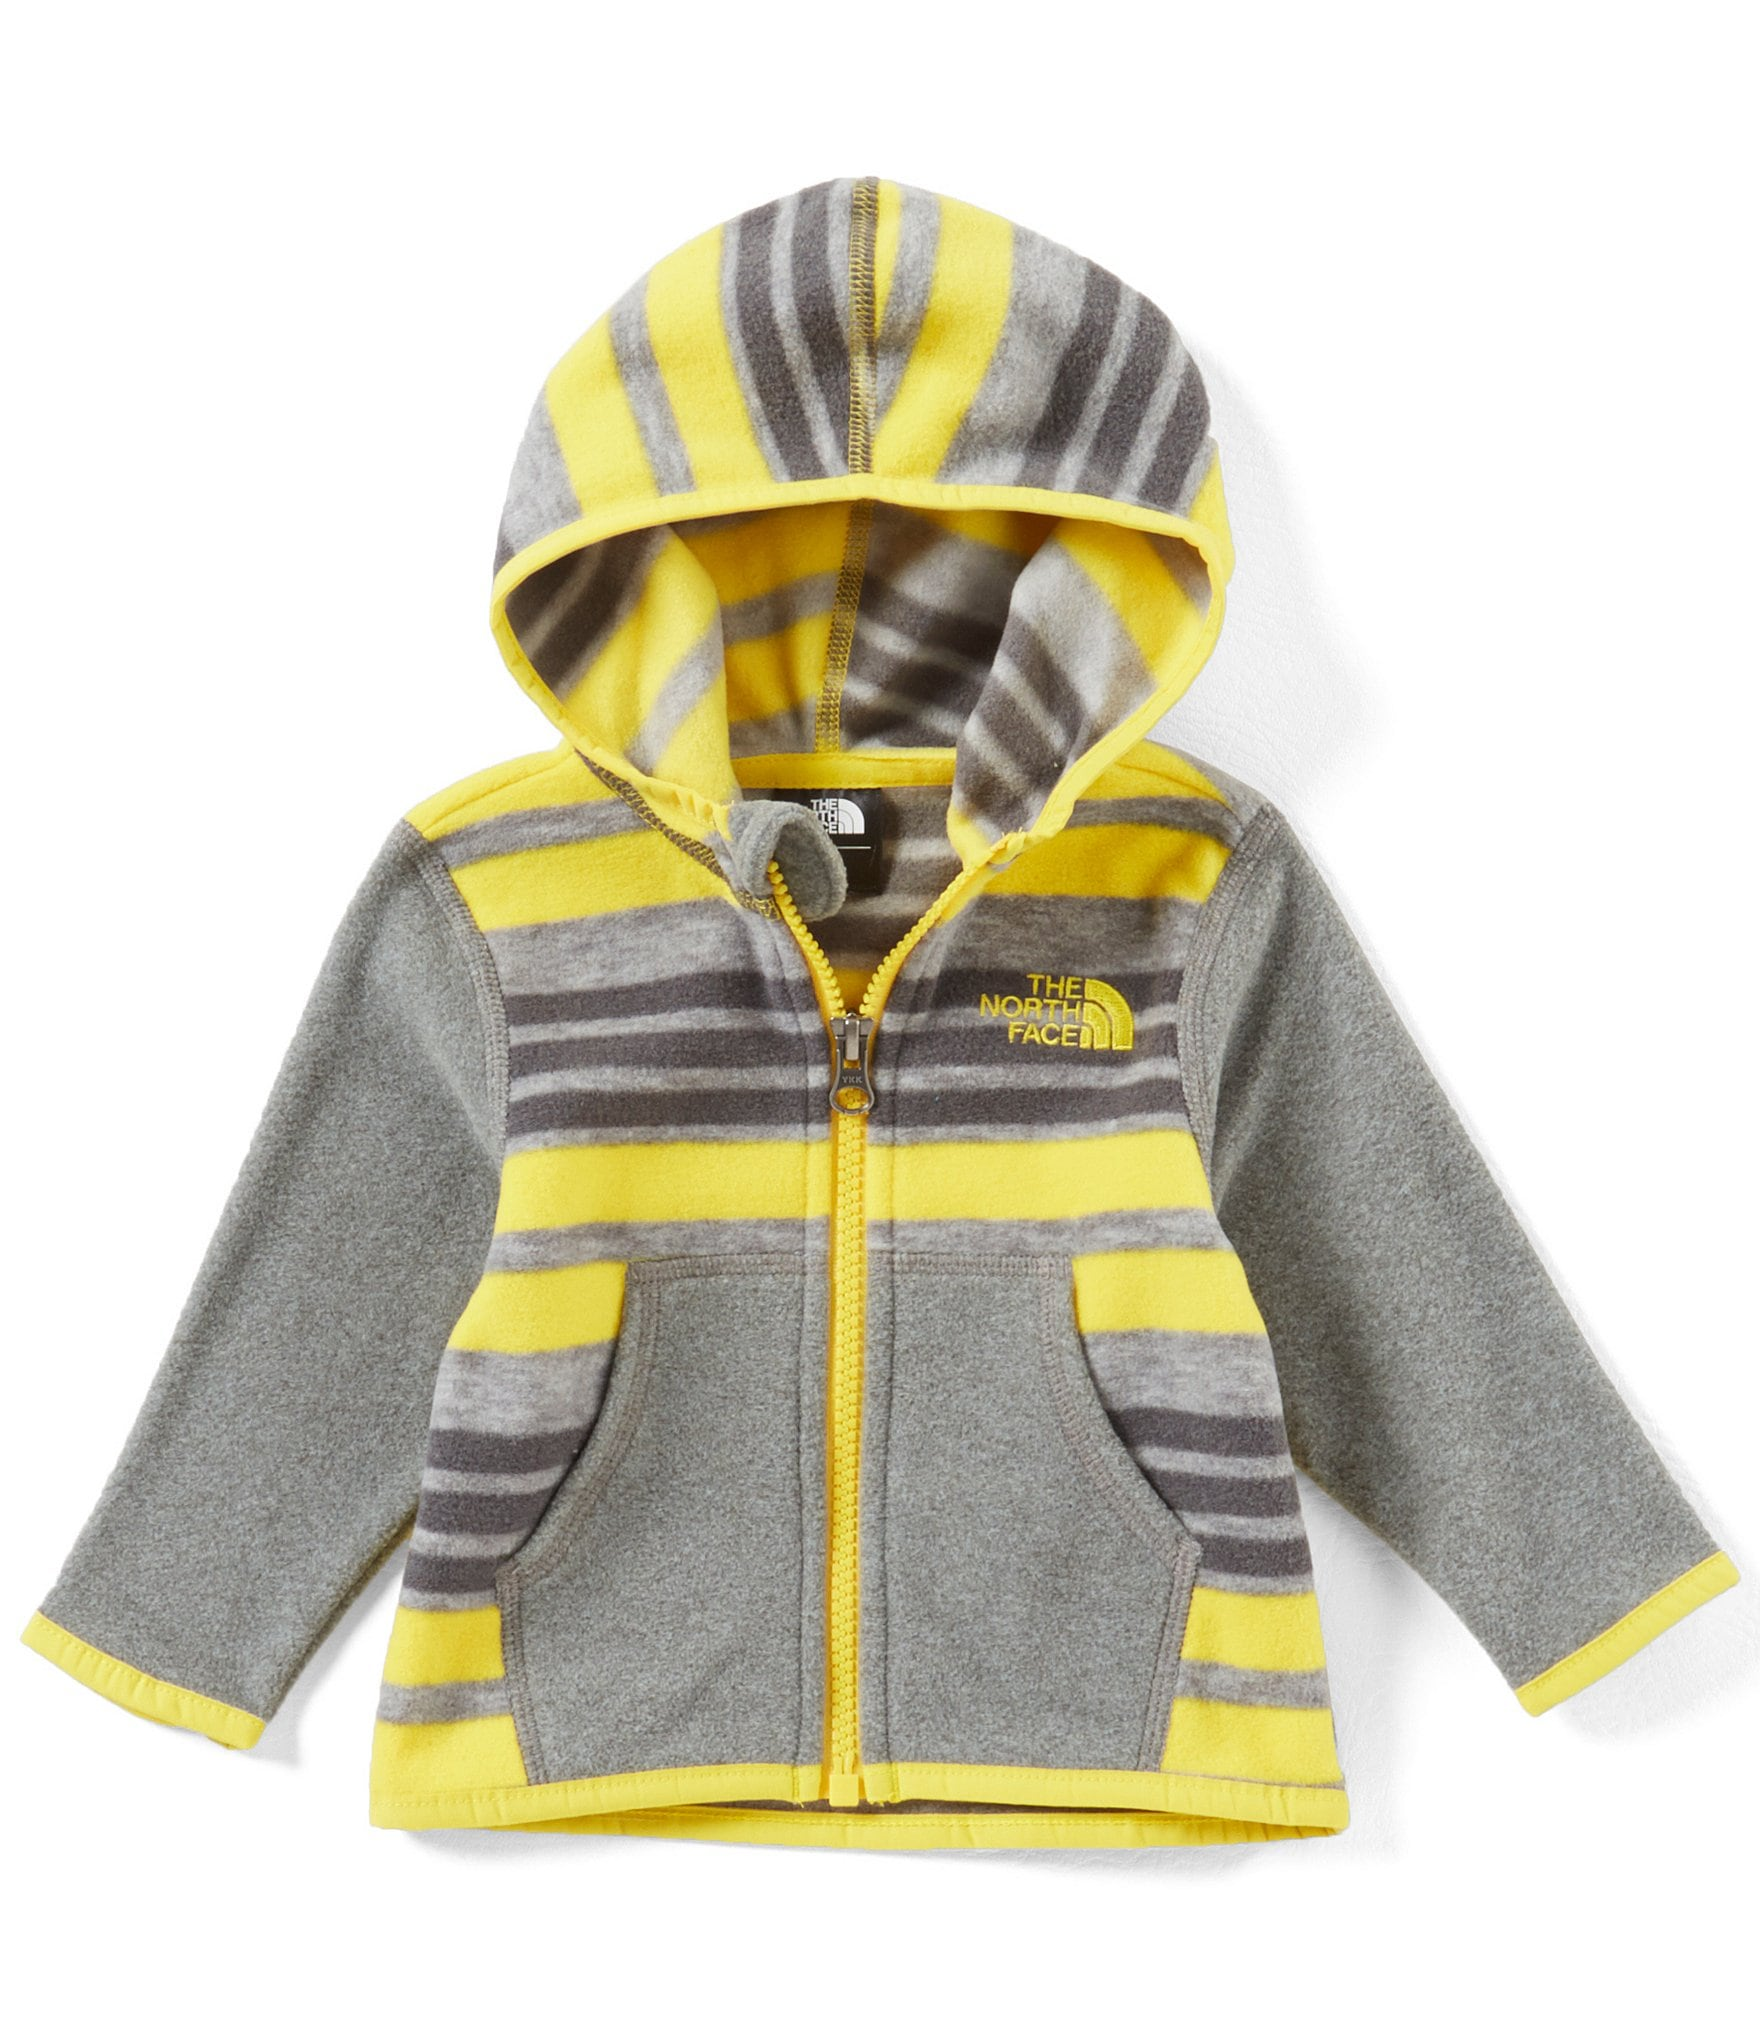 He'll stand out in baby clothes from Gap. Shop comfy baby boy clothing essentials like onesies, tops and bottoms.